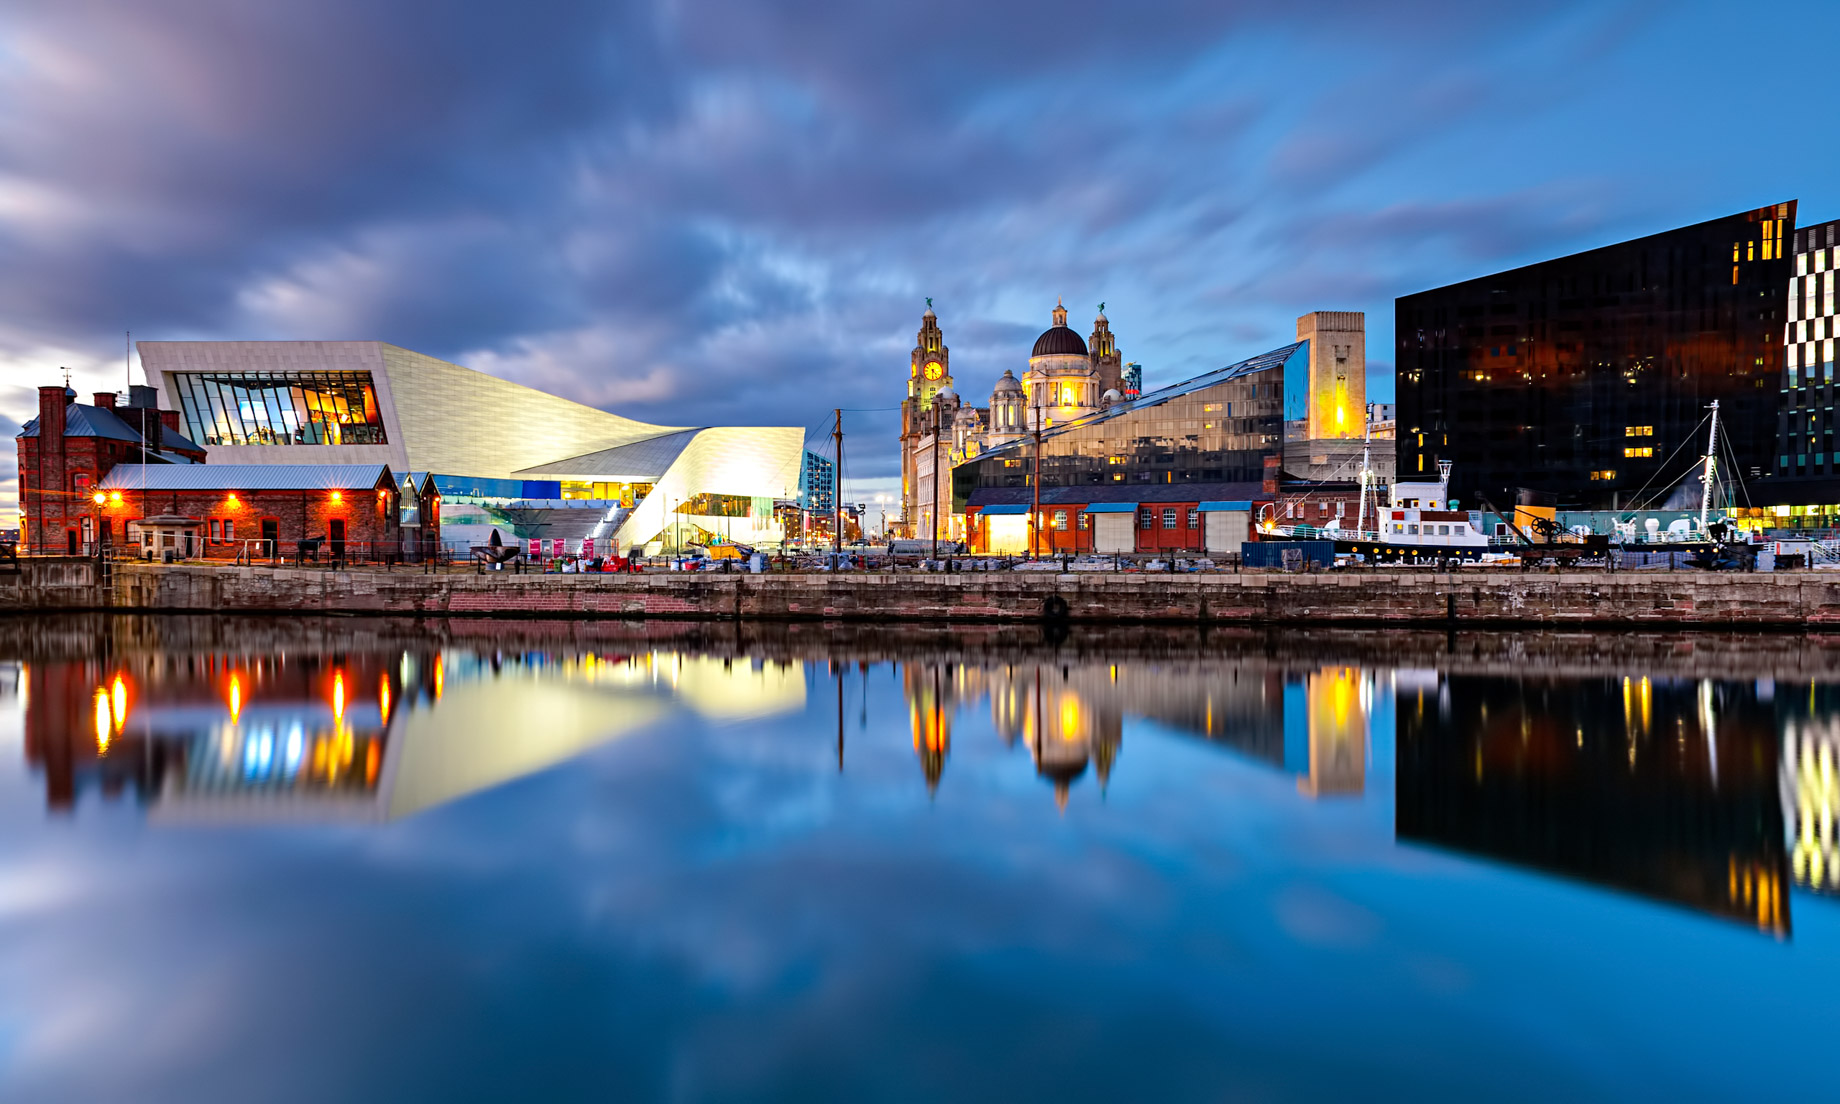 Liverpool - UK Property Investment Opportunities